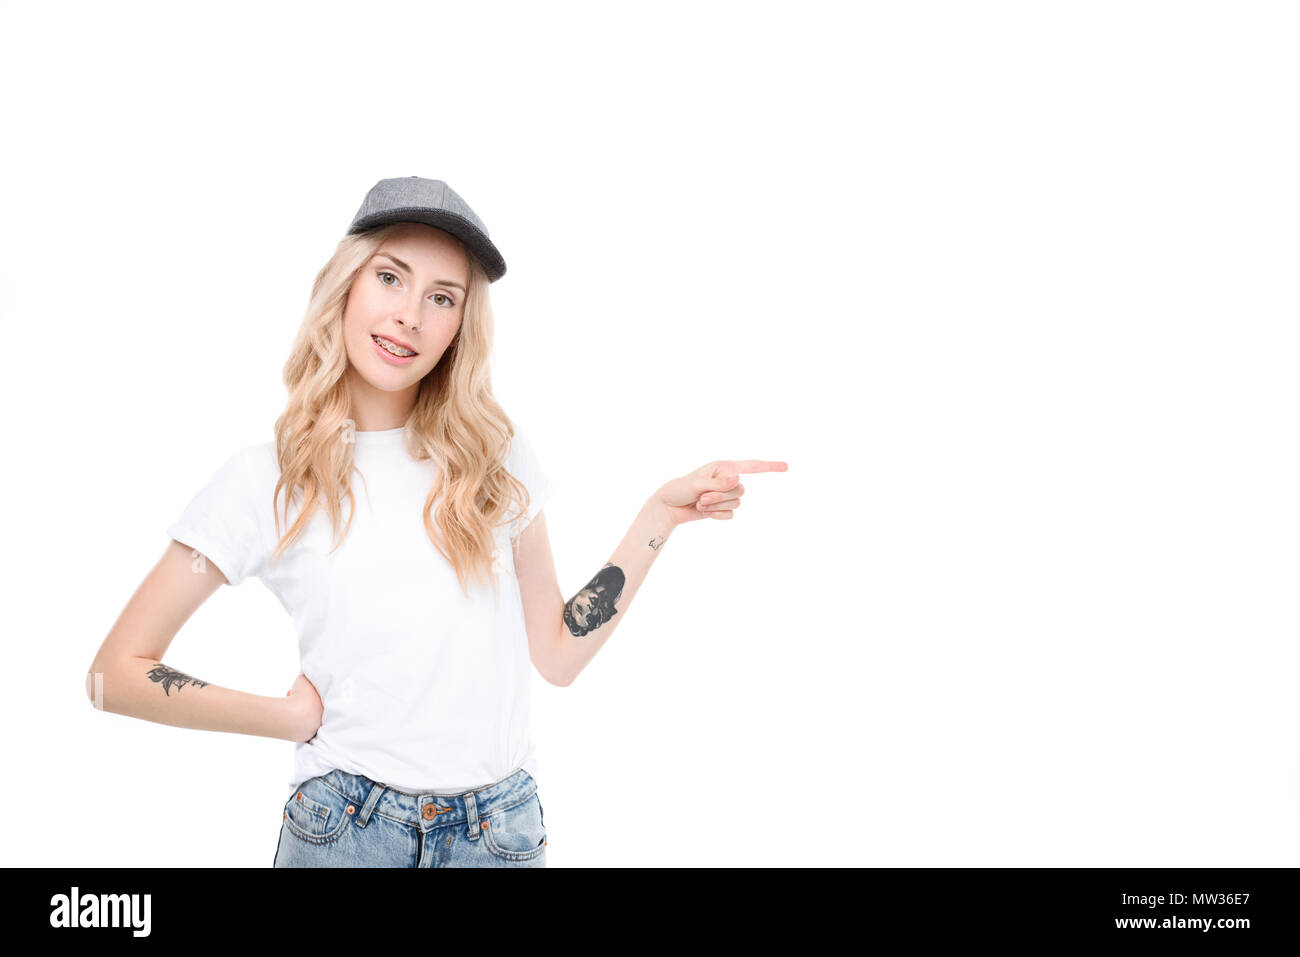 Half length shot of a young caucasian woman in casual clothes pointing to the side. - Stock Image